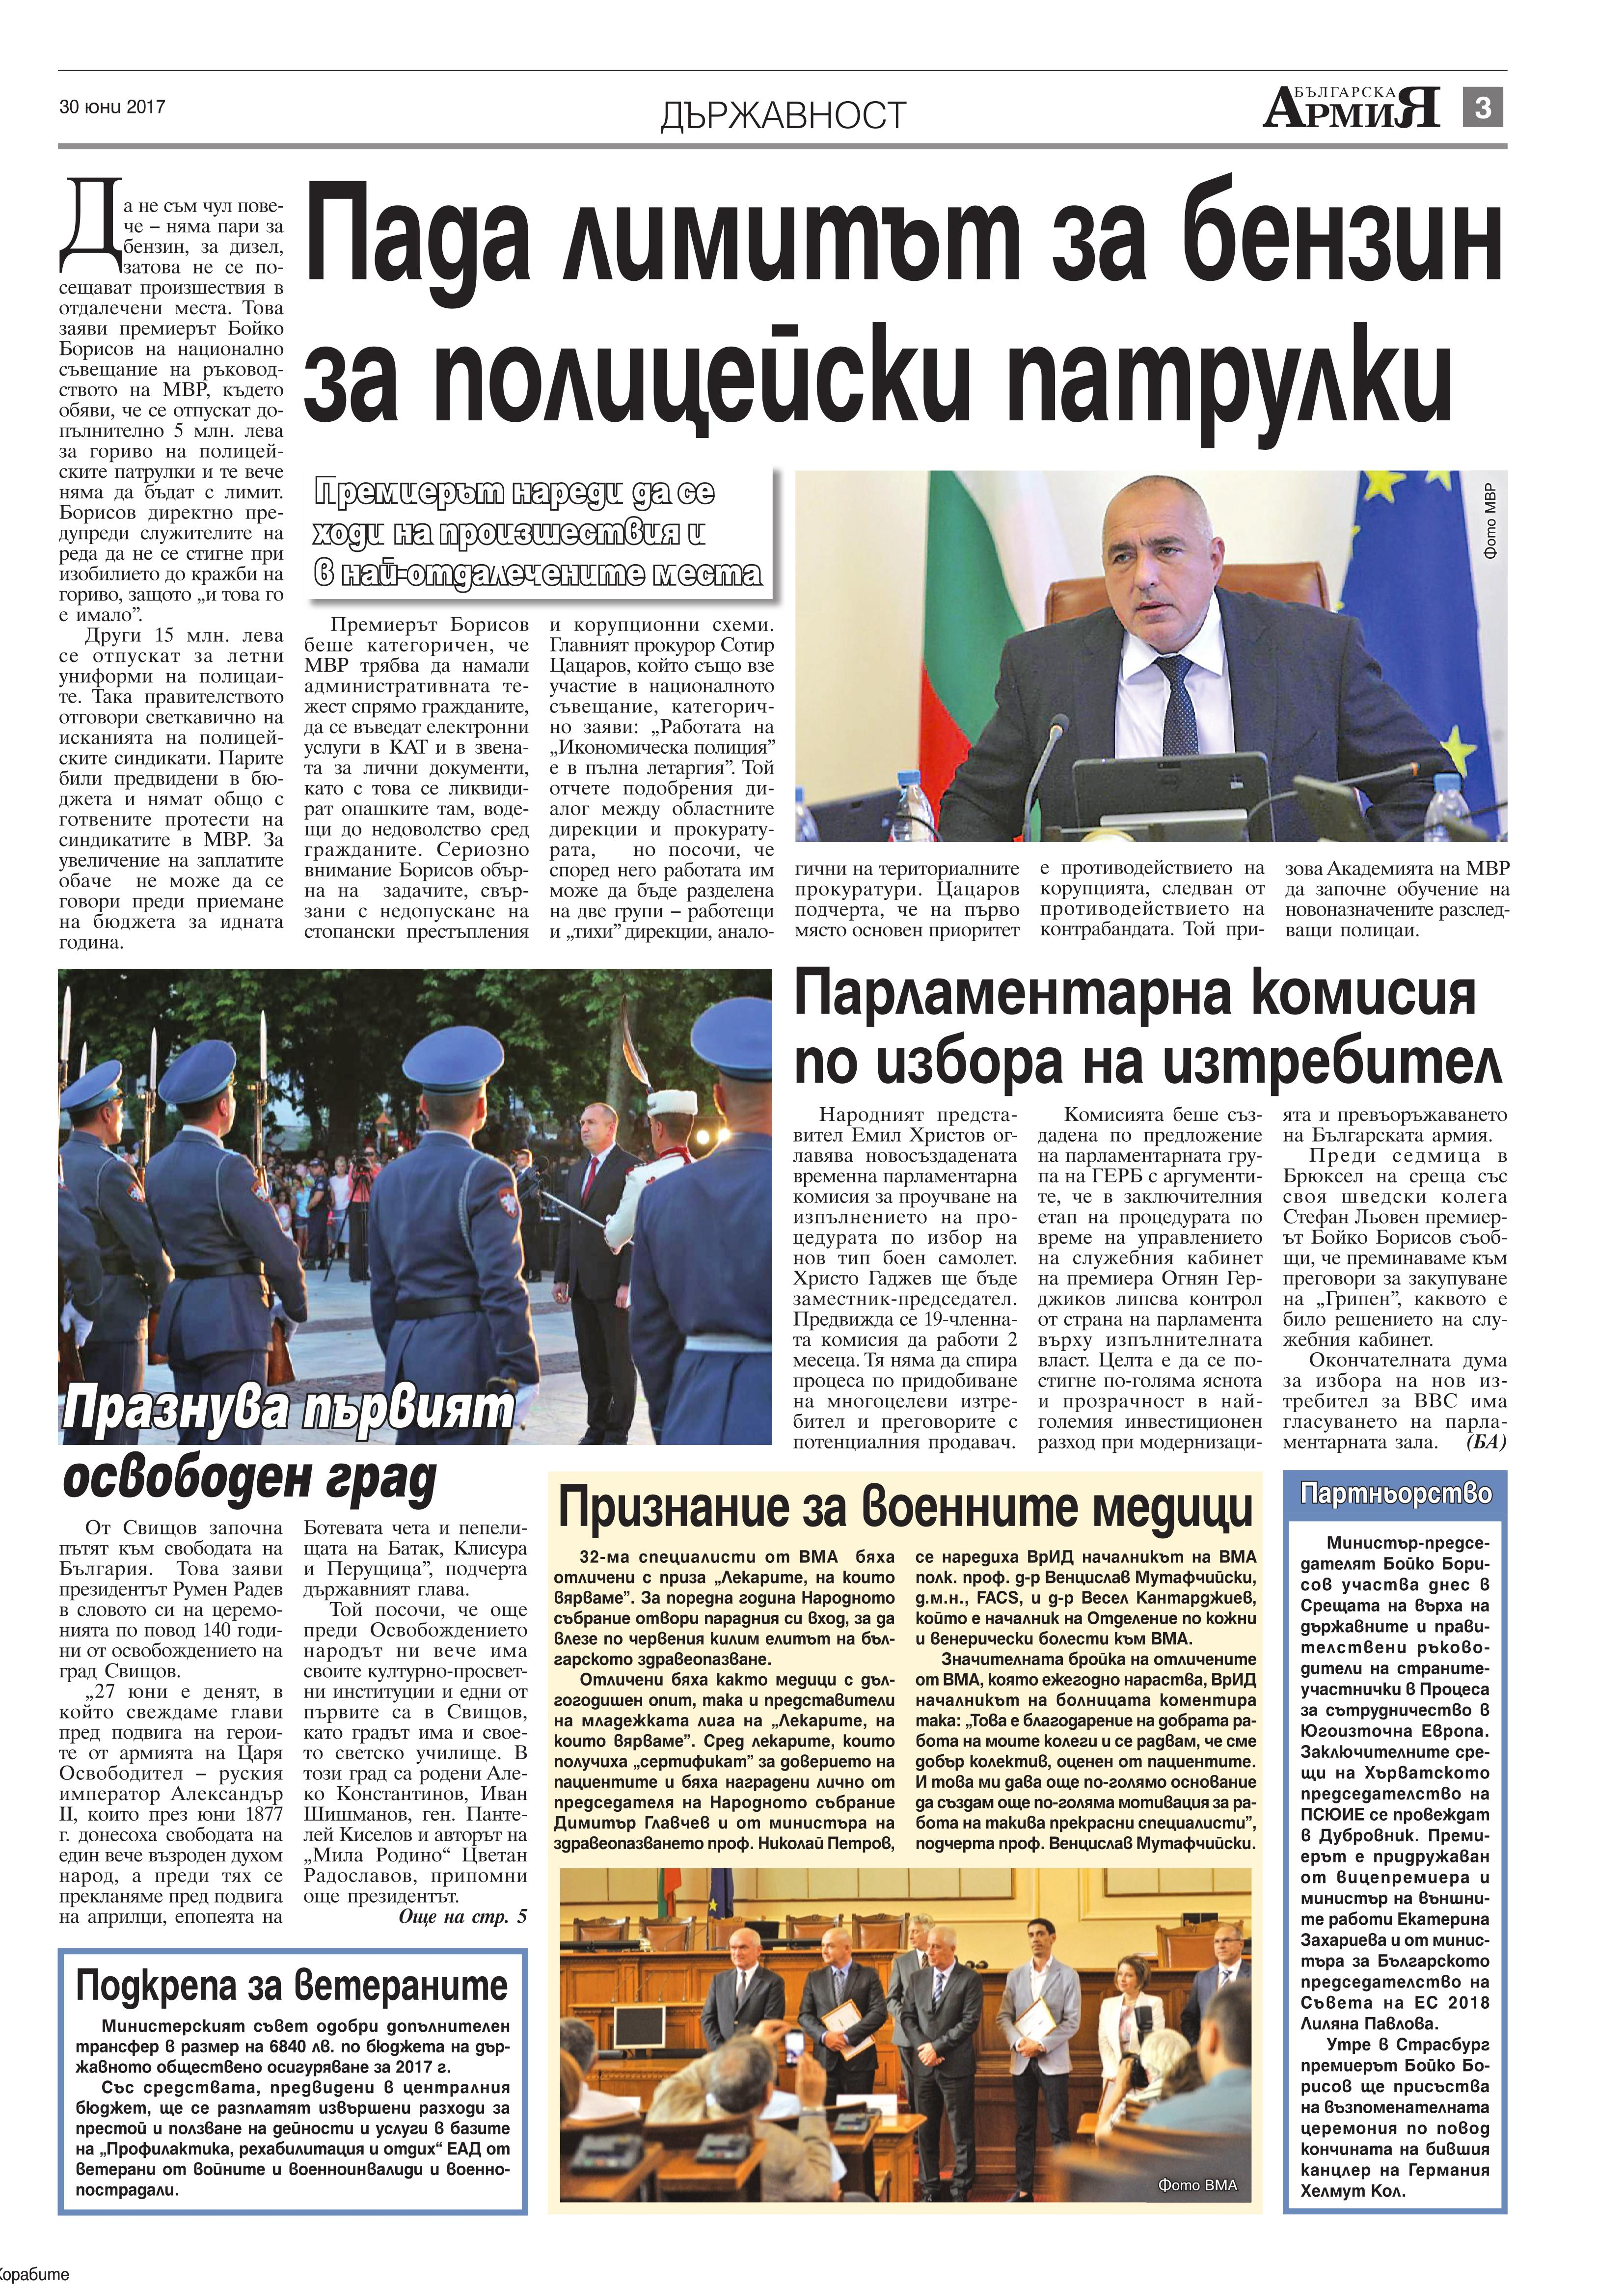 https://www.armymedia.bg/wp-content/uploads/2015/06/03.page1_-23.jpg